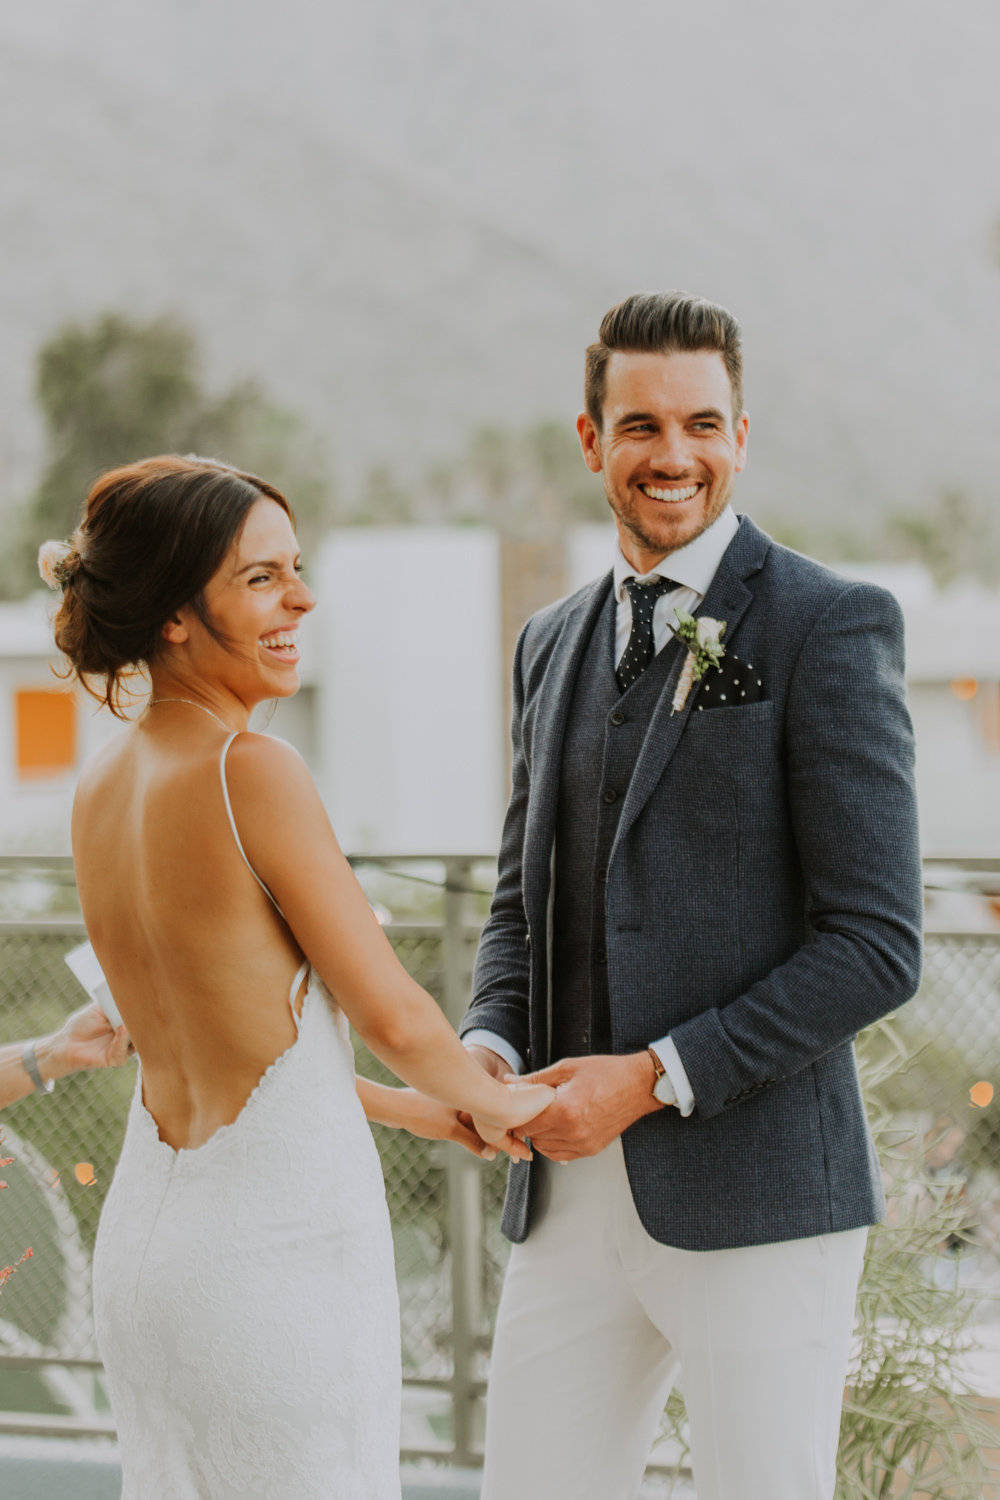 Brianna Broyles_Palm Springs Wedding Photographer_Ace Hotel Wedding_Ace Hotel Palm Springs-50